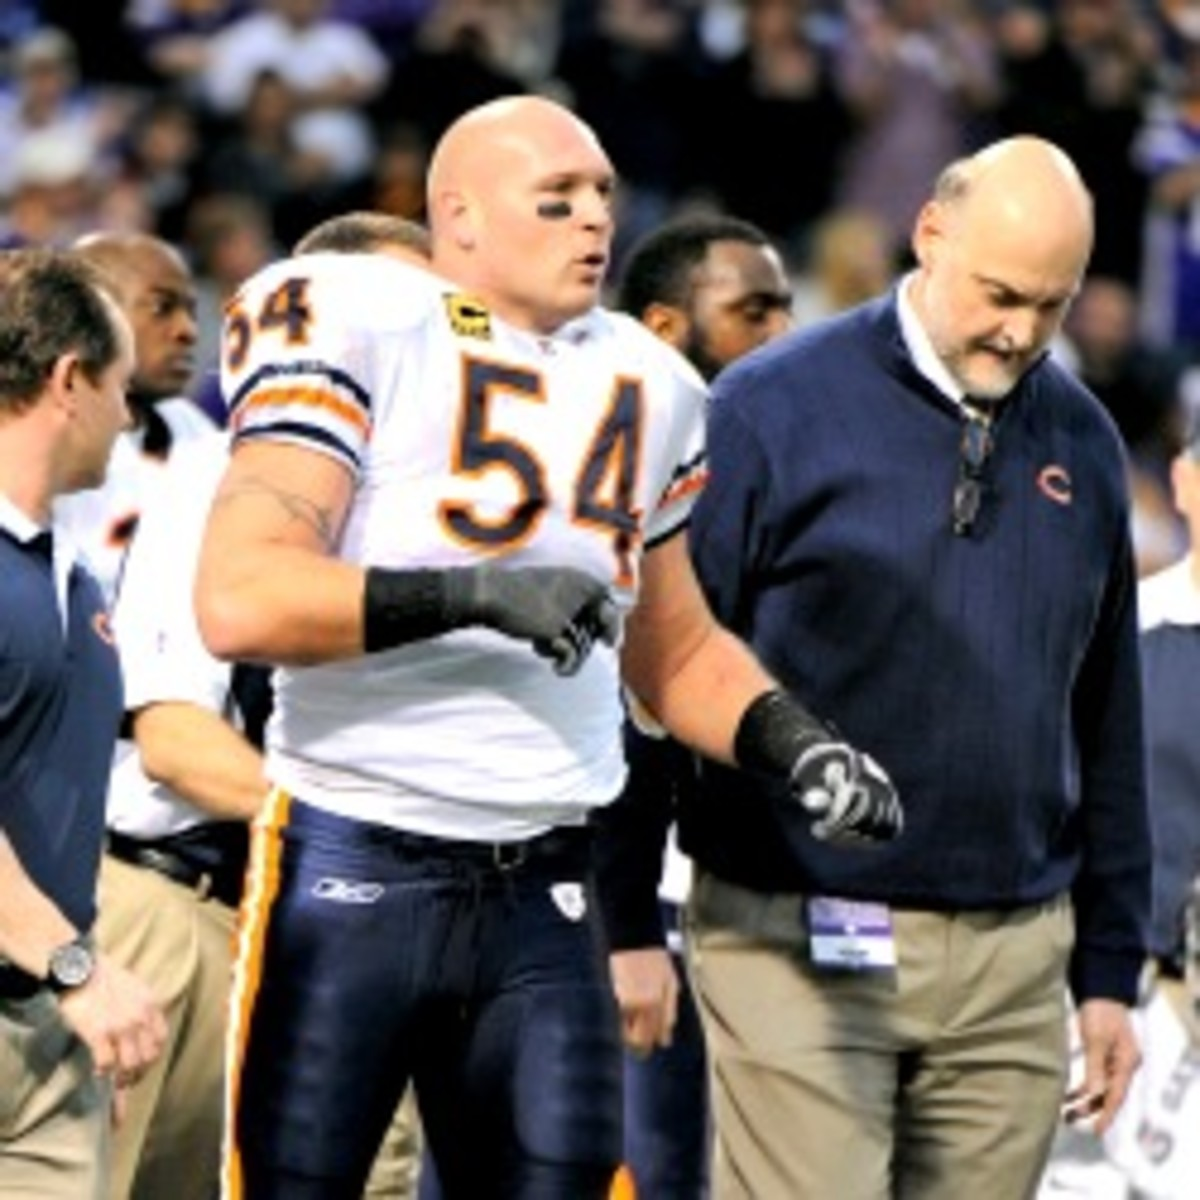 Former Bears linebacker Brian Urlacher said he thinks the Bears never really wanted him back. (Hannah Foslien/Getty Images)